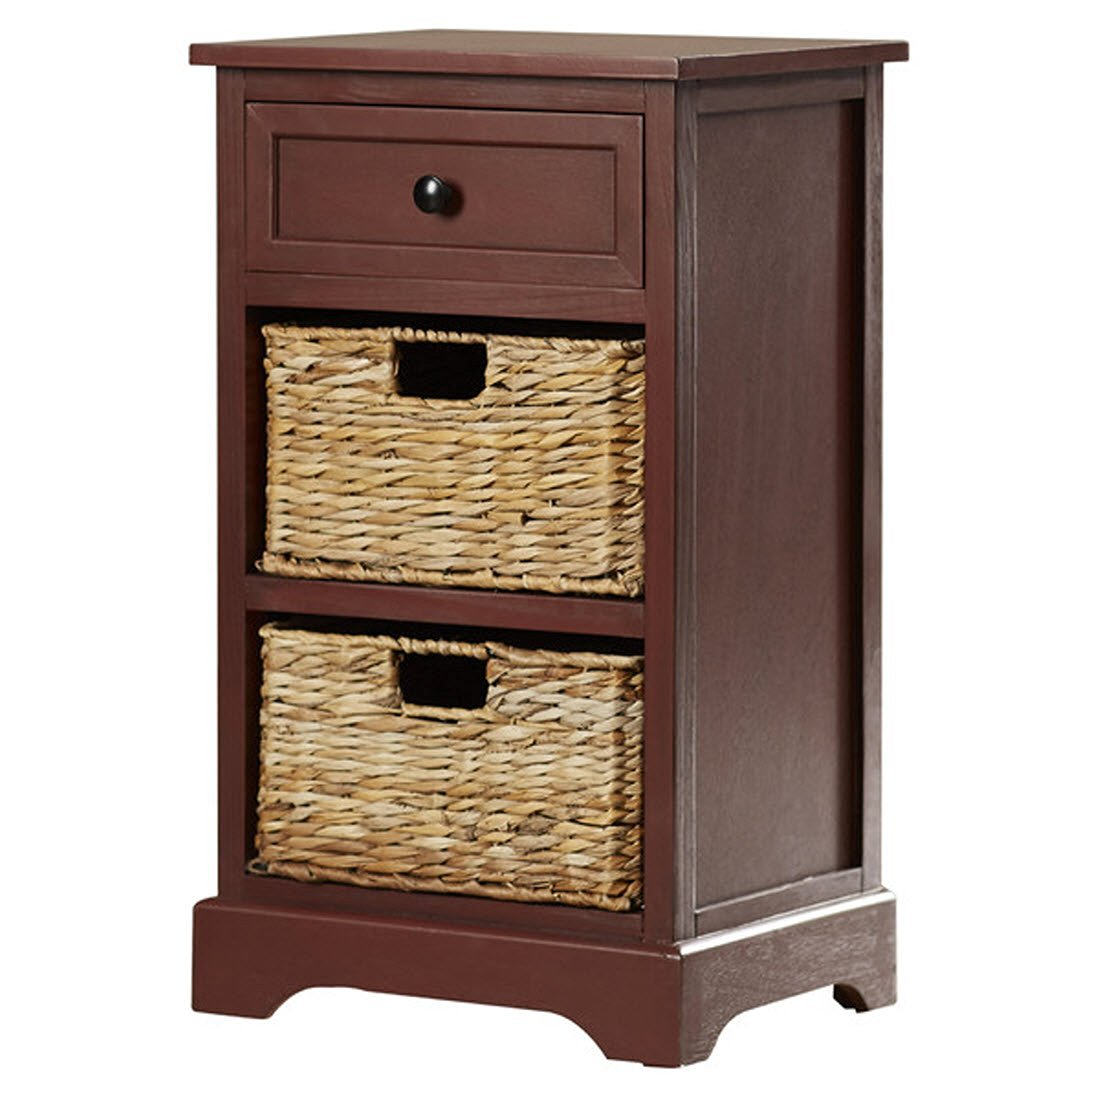 Nonatum Storage End Table- It Has 3 Drawers - Comes with Rattan Wicker Baskets - Rectangular Shape (Red)